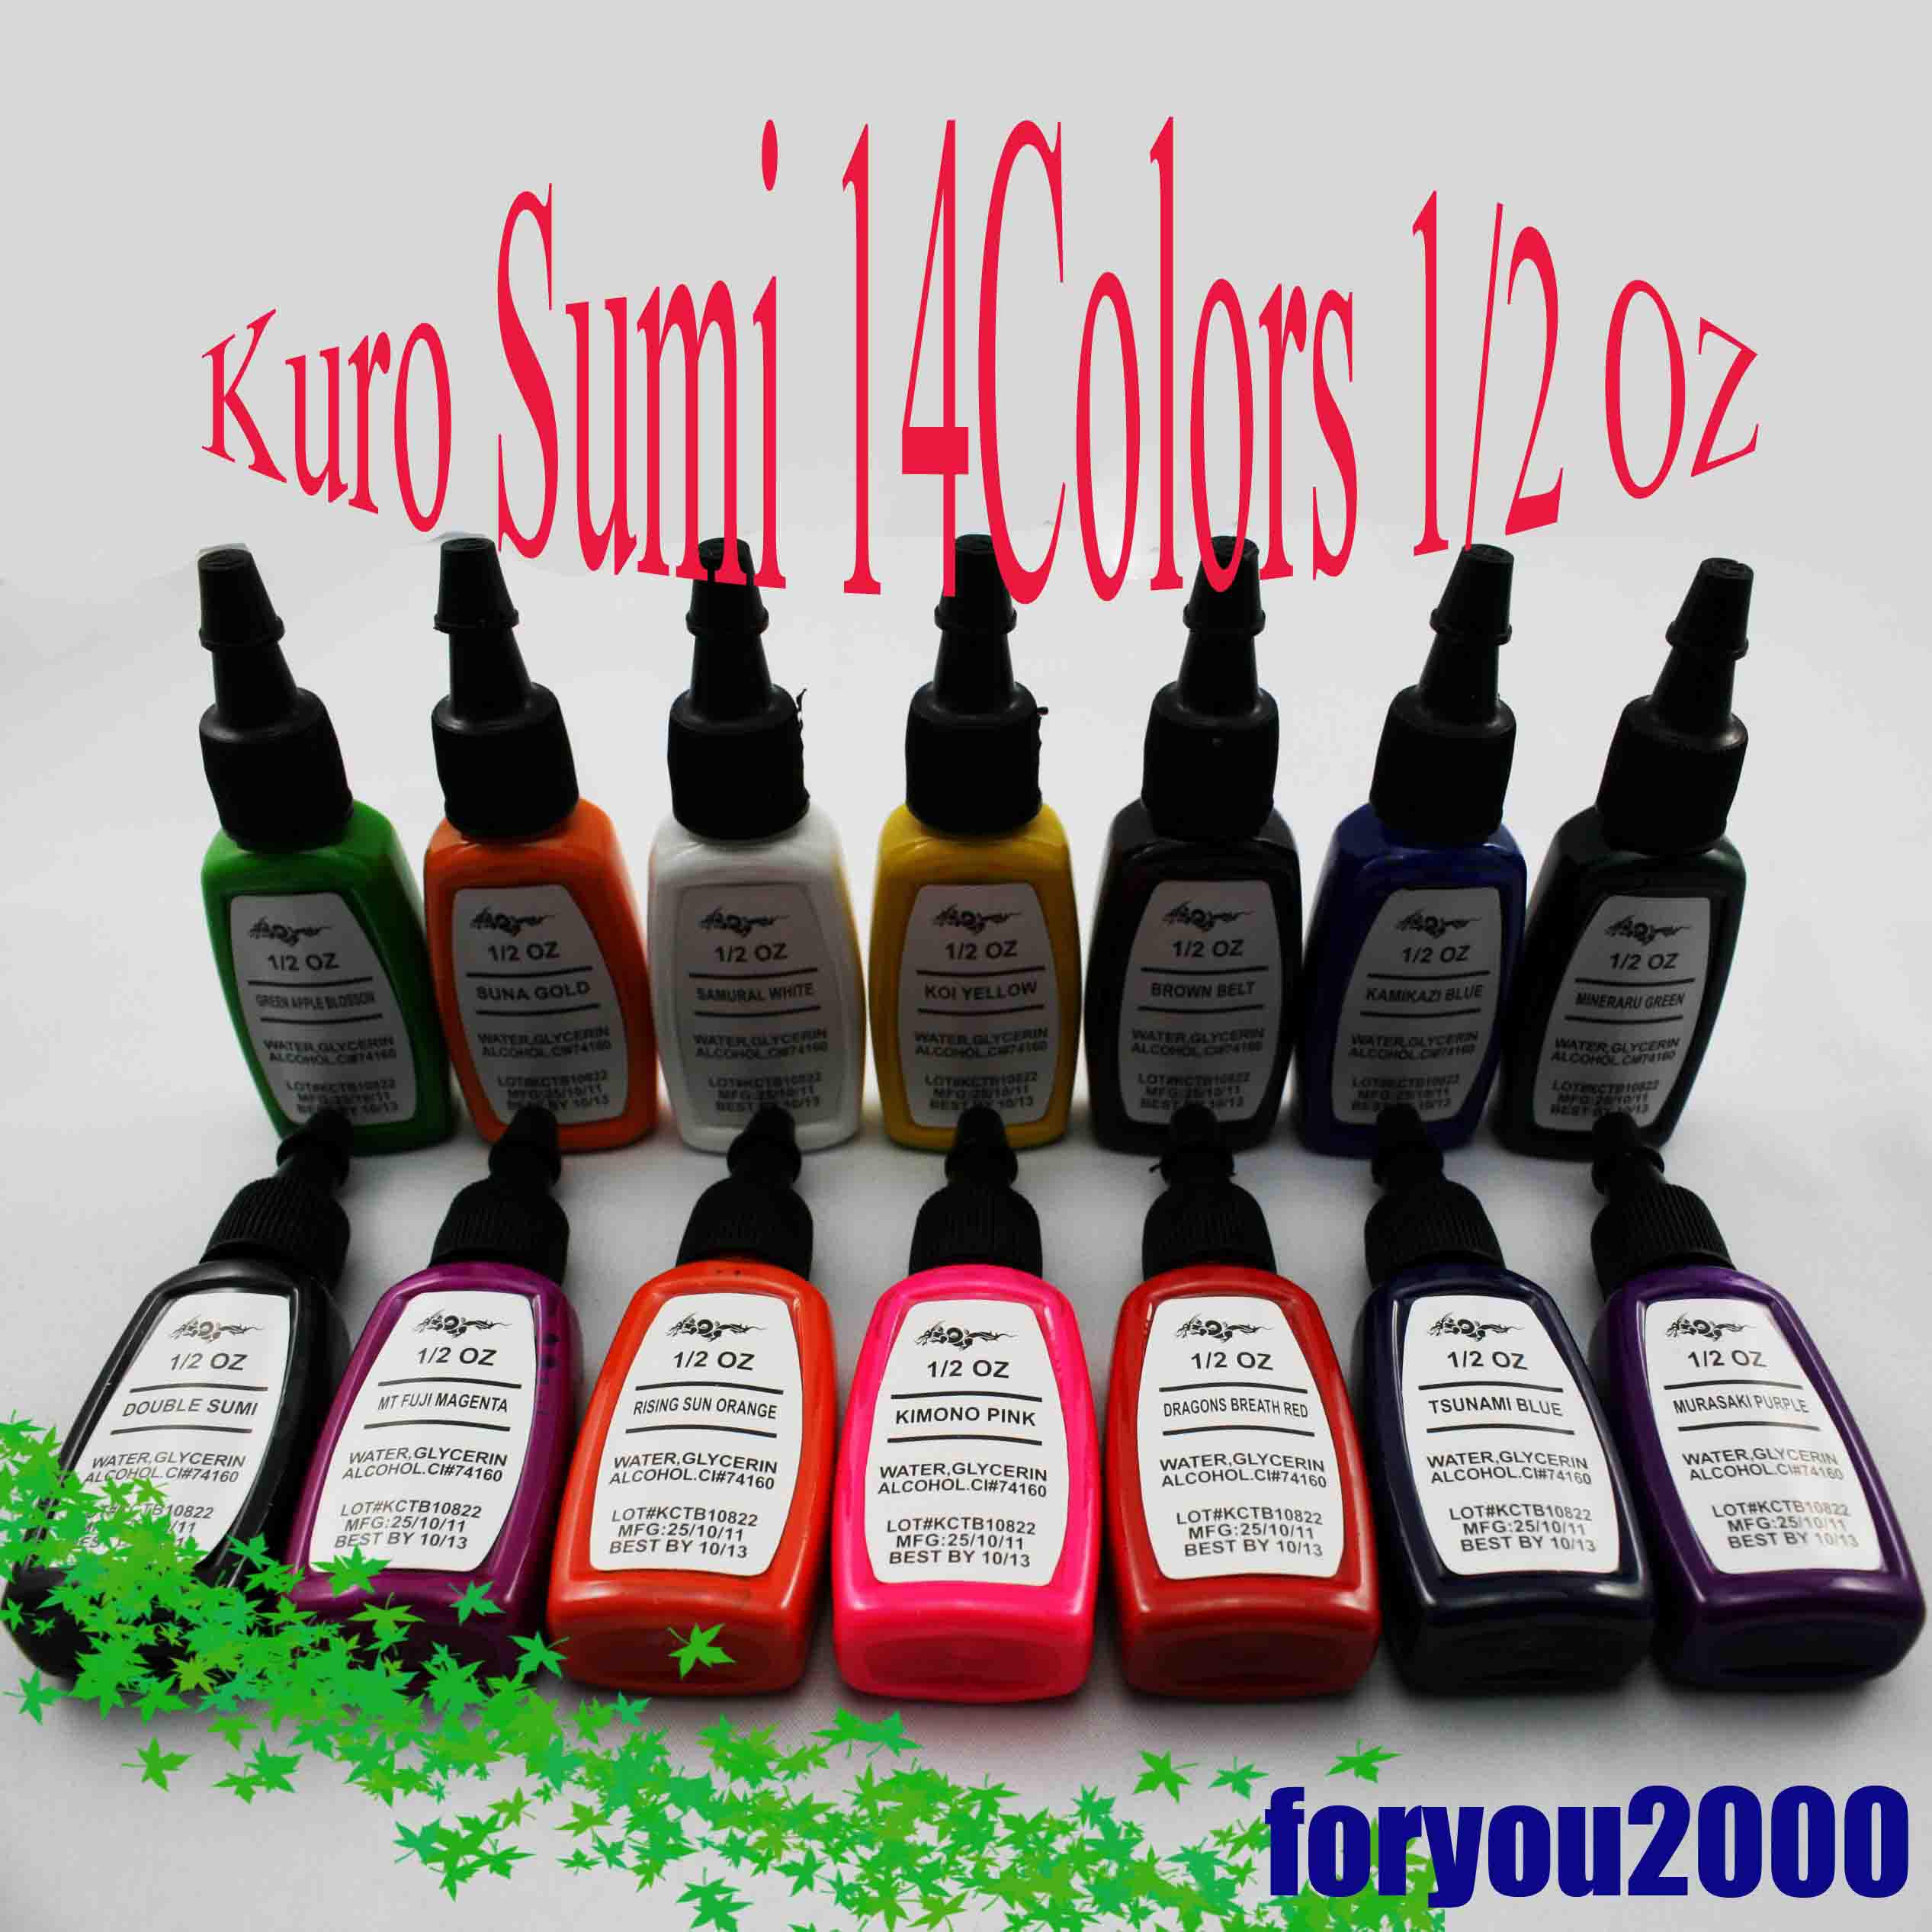 Hot Sale Set Of Kuro Sum  Oz Tattoo Ink Pigment New Tattoo Supply Tattoo Inks Tattoo Pigment Ink Tattoo Online With   Piece On Foryous Store